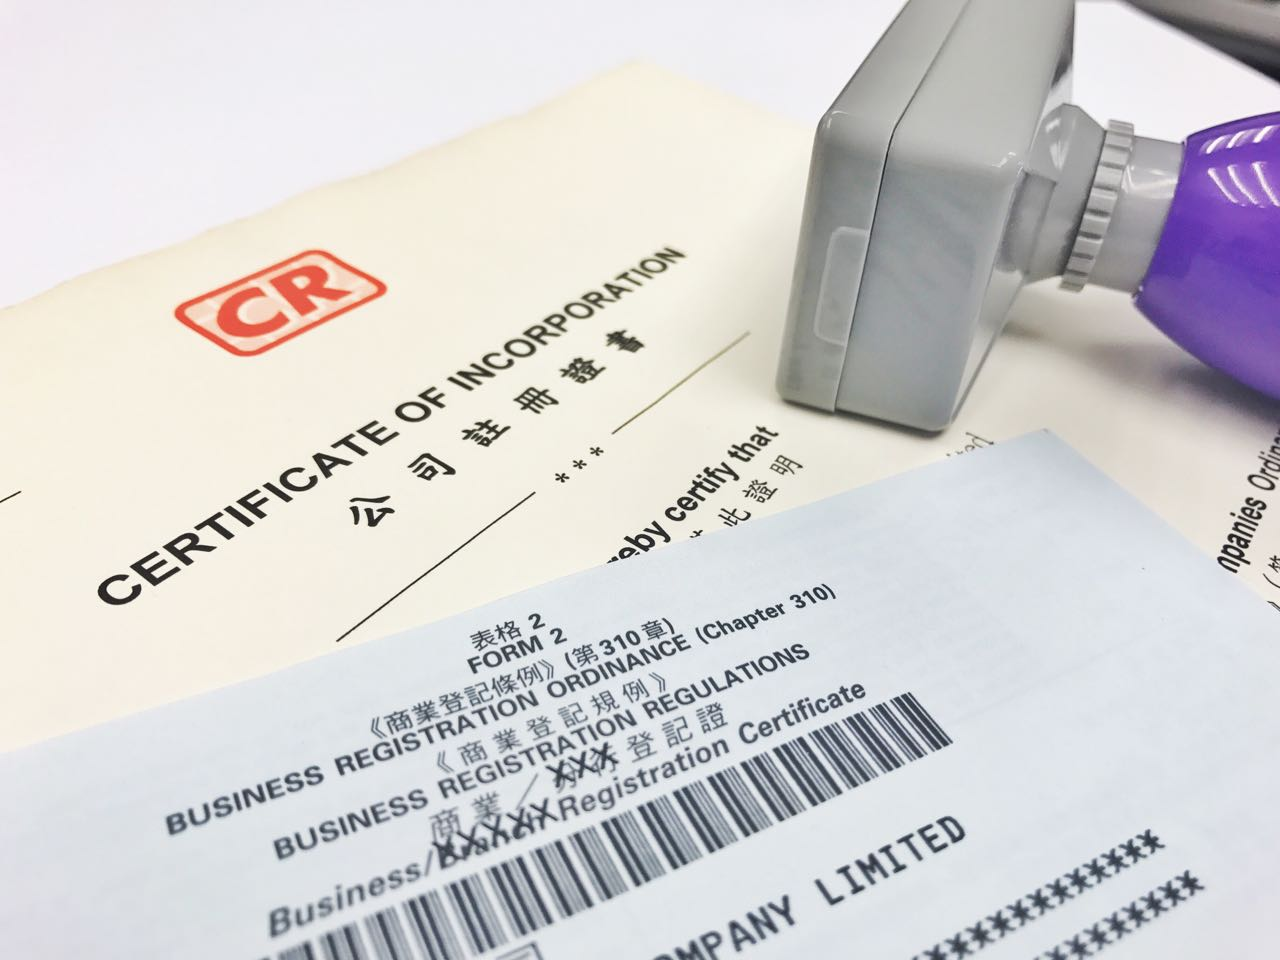 Hong Kong Company Registration Service